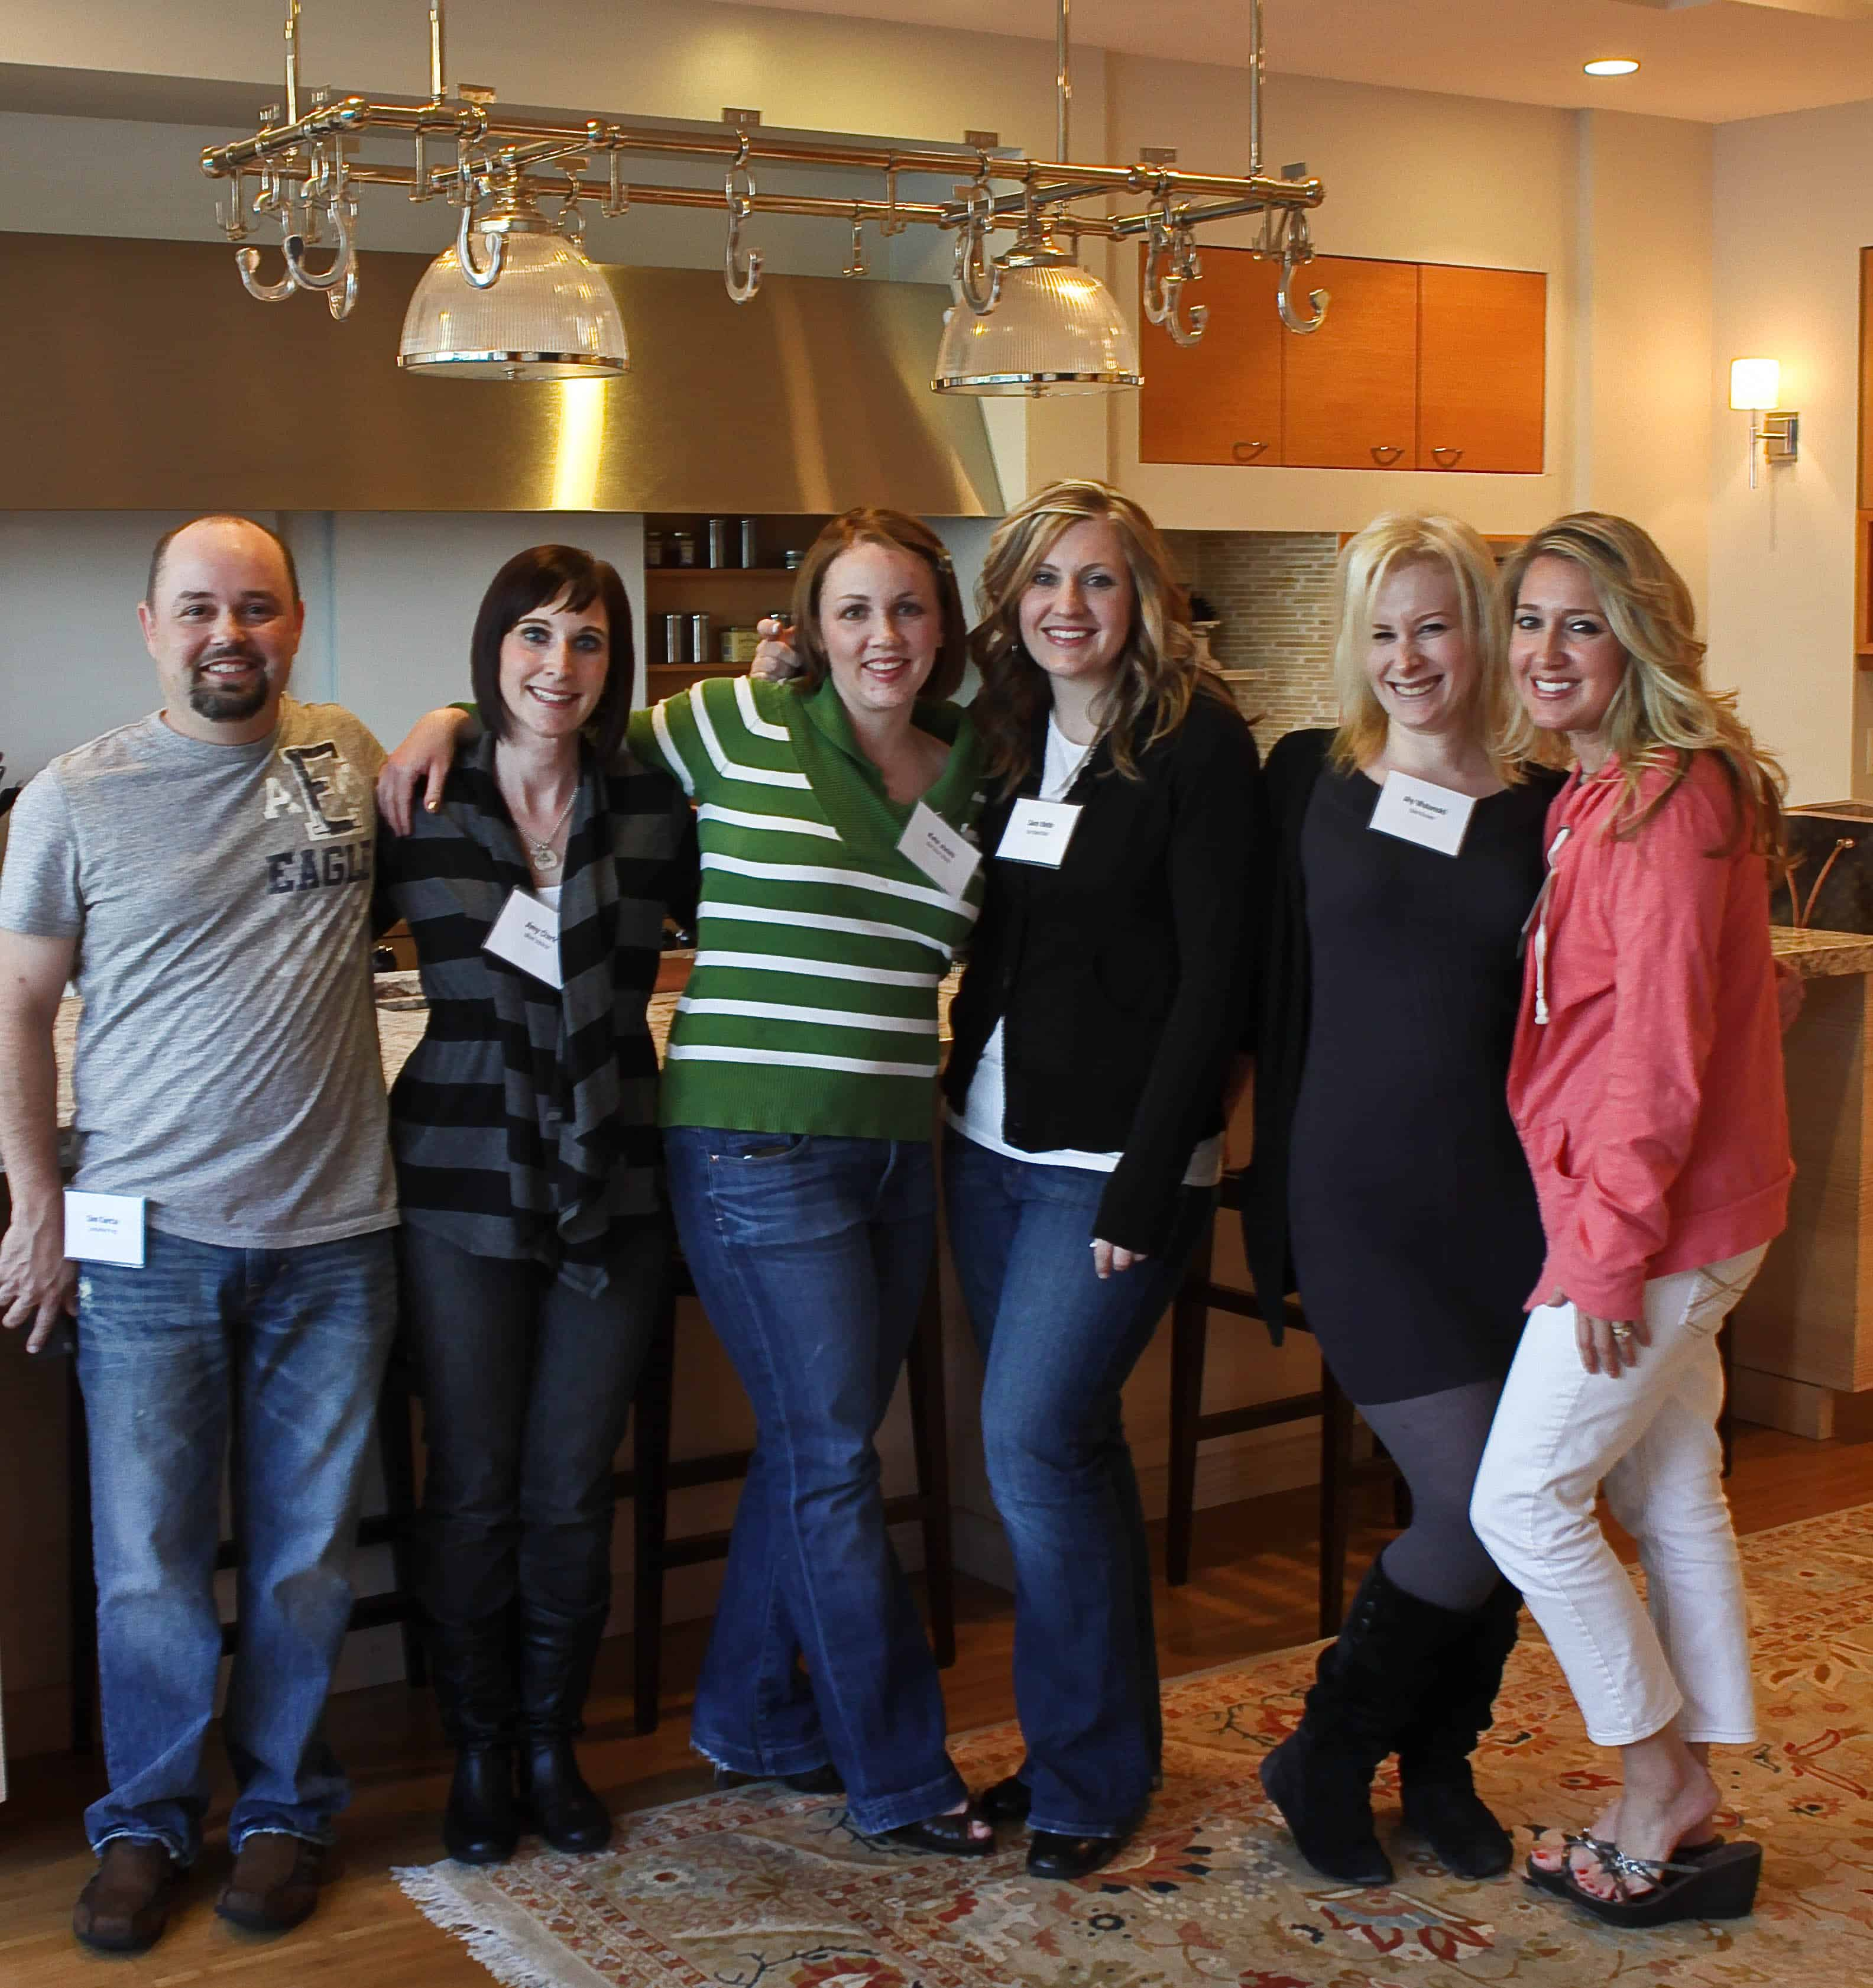 Six Food Bloggers Posing in One of the Better Homes and Gardens Test Kitchens